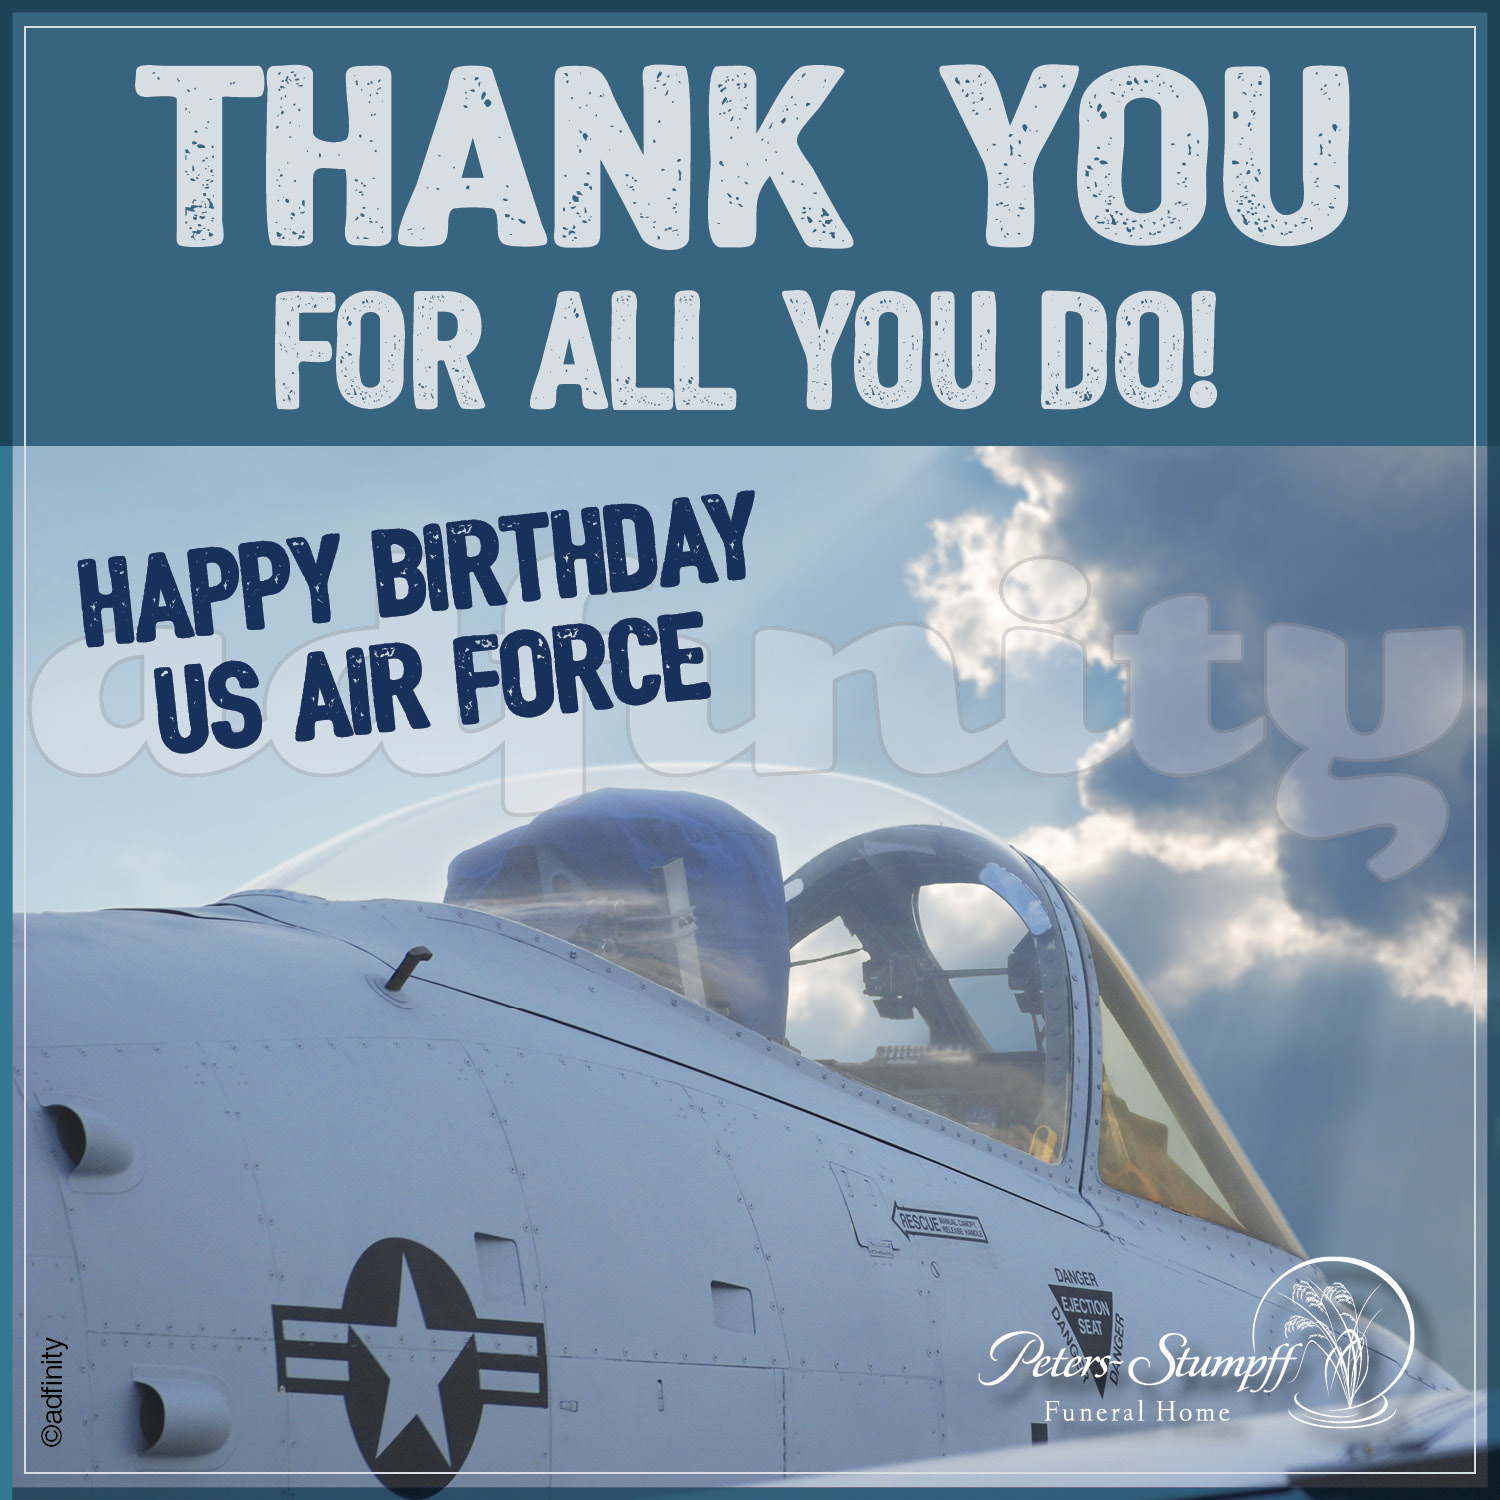 091503%C2%A0Thank+you+for+all+you+do%21+Happy+birthday+US+Air+Force+Air+Force+Birthday+Facebook+meme thank you for all you do! happy birthday us air force! (facebook